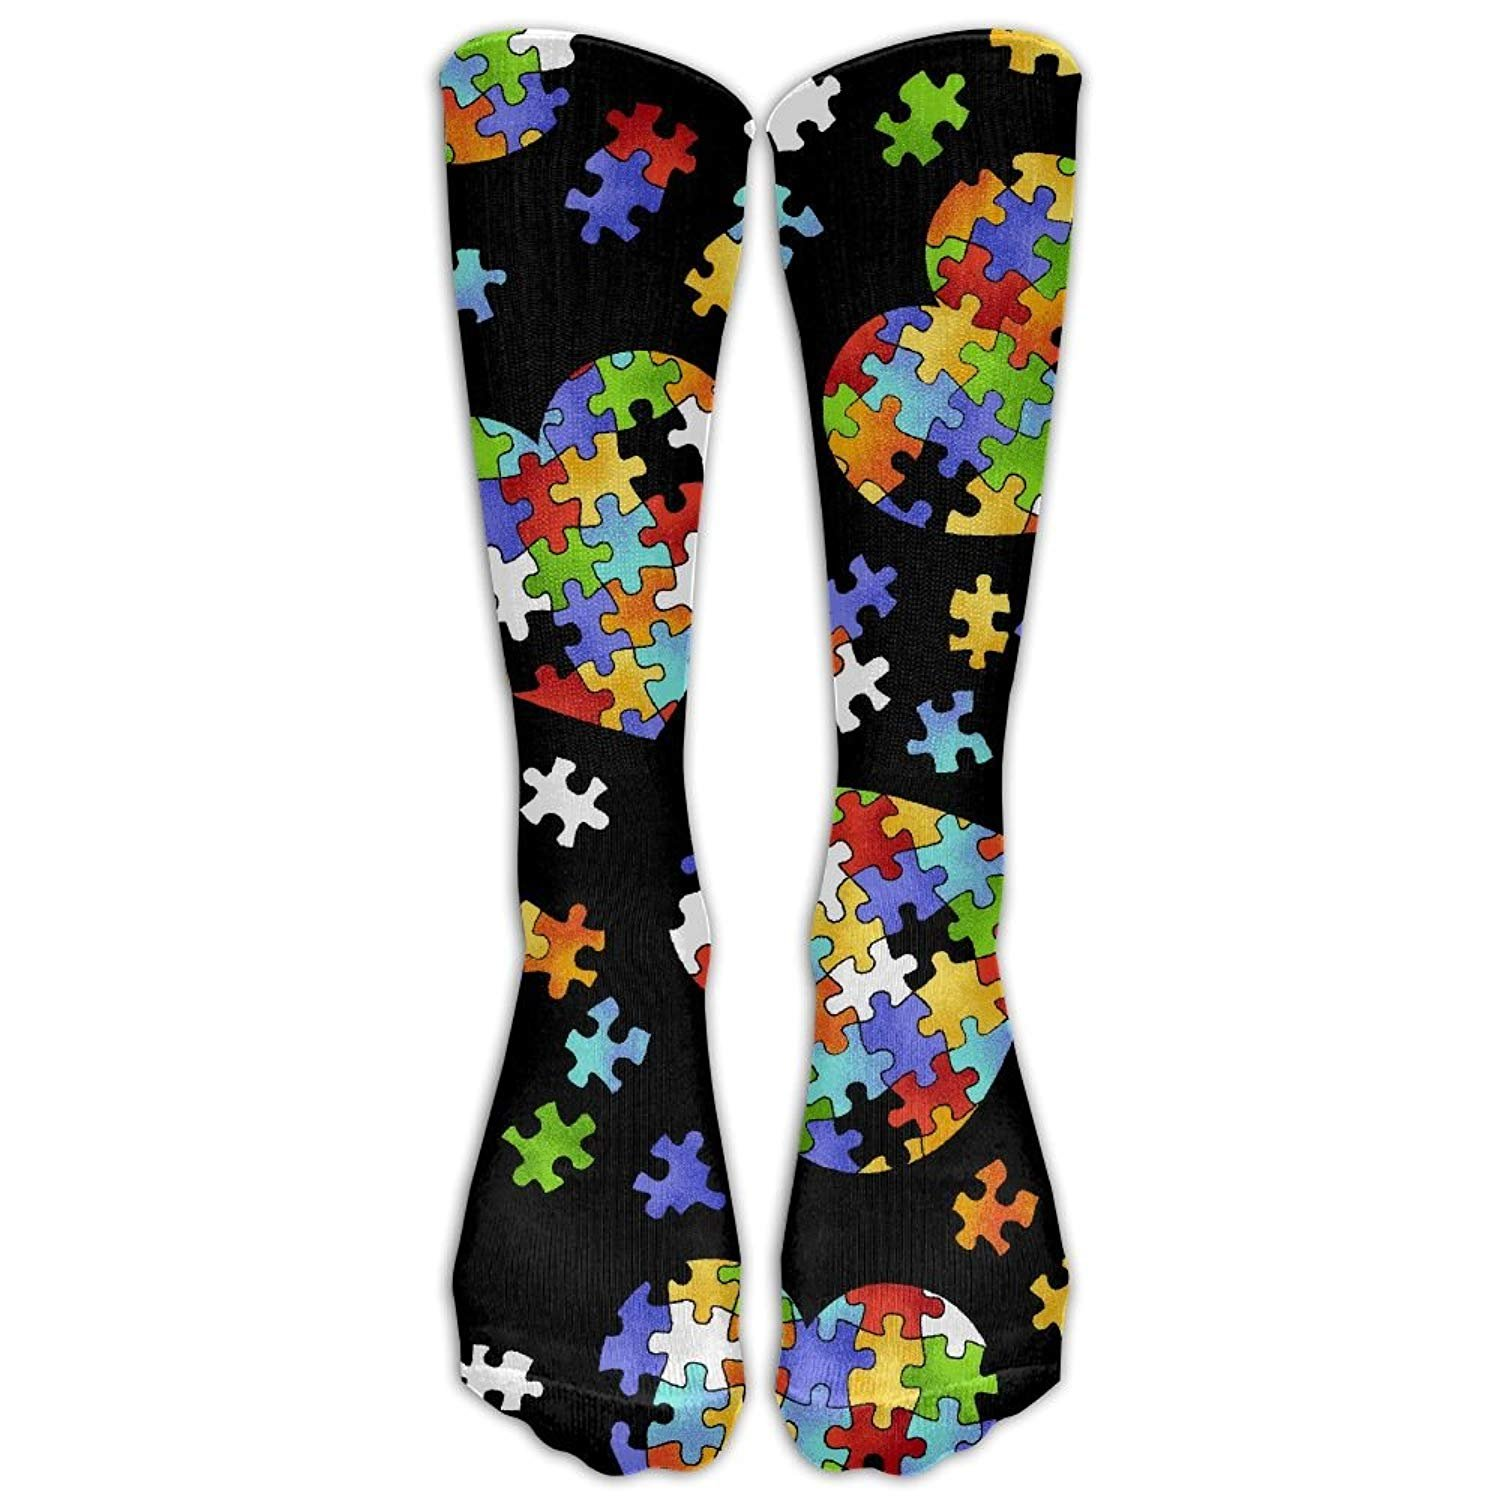 pigyear888 Colorful Autism Awareness Puzzle Pieces Heart Casual Unisex Sock Knee Long High Socks Sport Athletic Crew Socks One Size 8723027393802